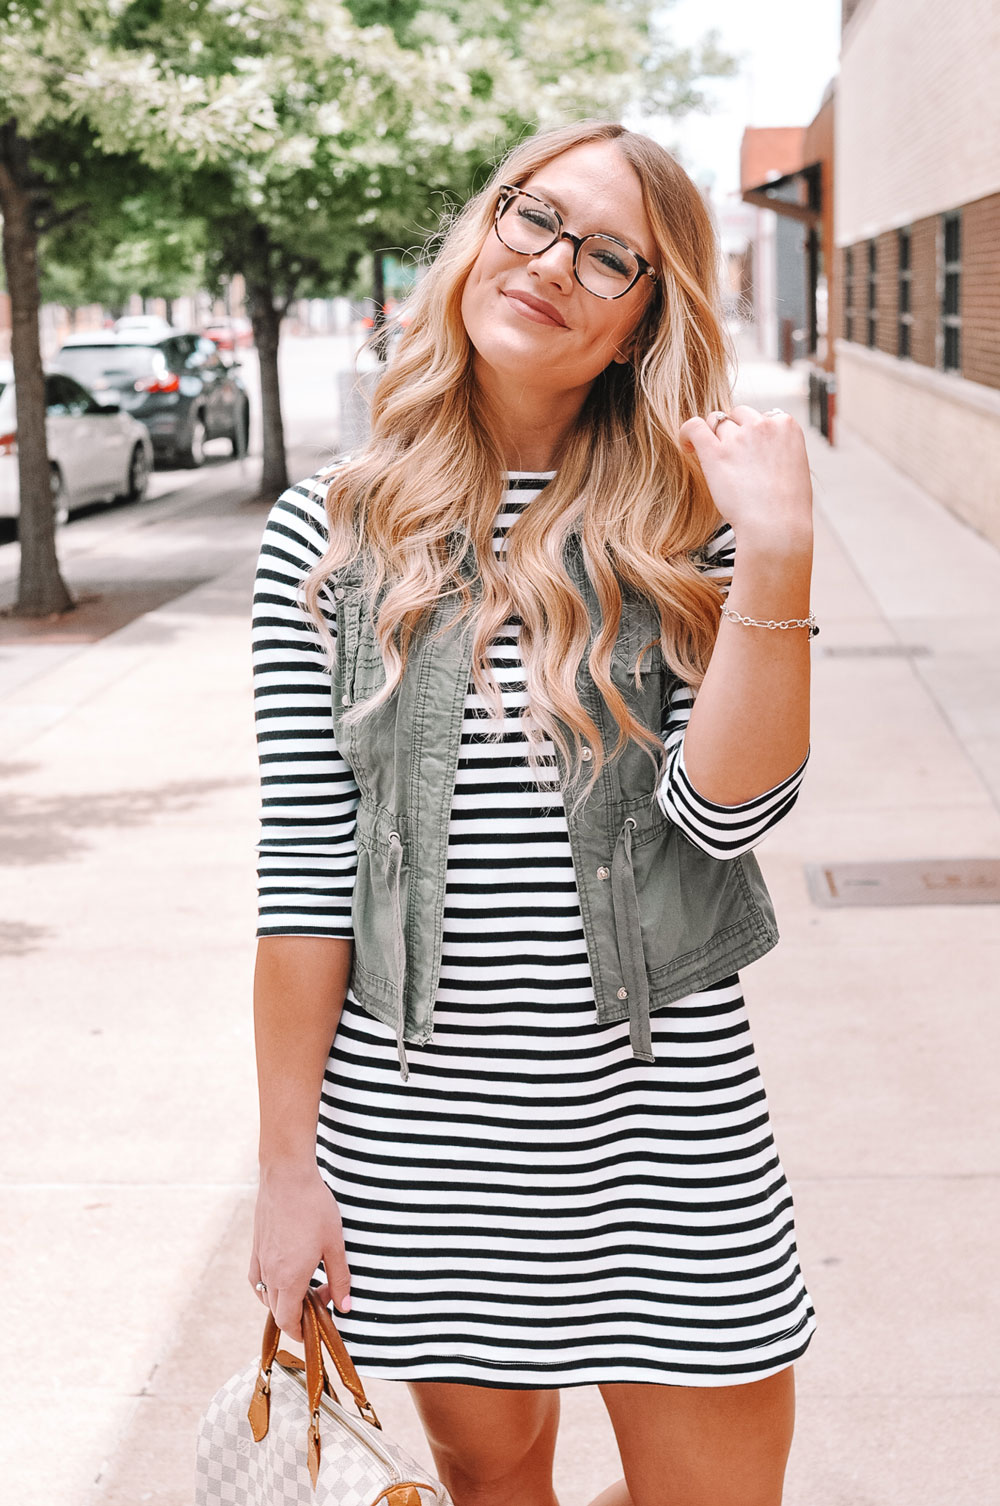 Oklahoma City blogger Amanda's OK wears a striped t-shirt dress and an olive vest with her James Avery onyx charm bracelet